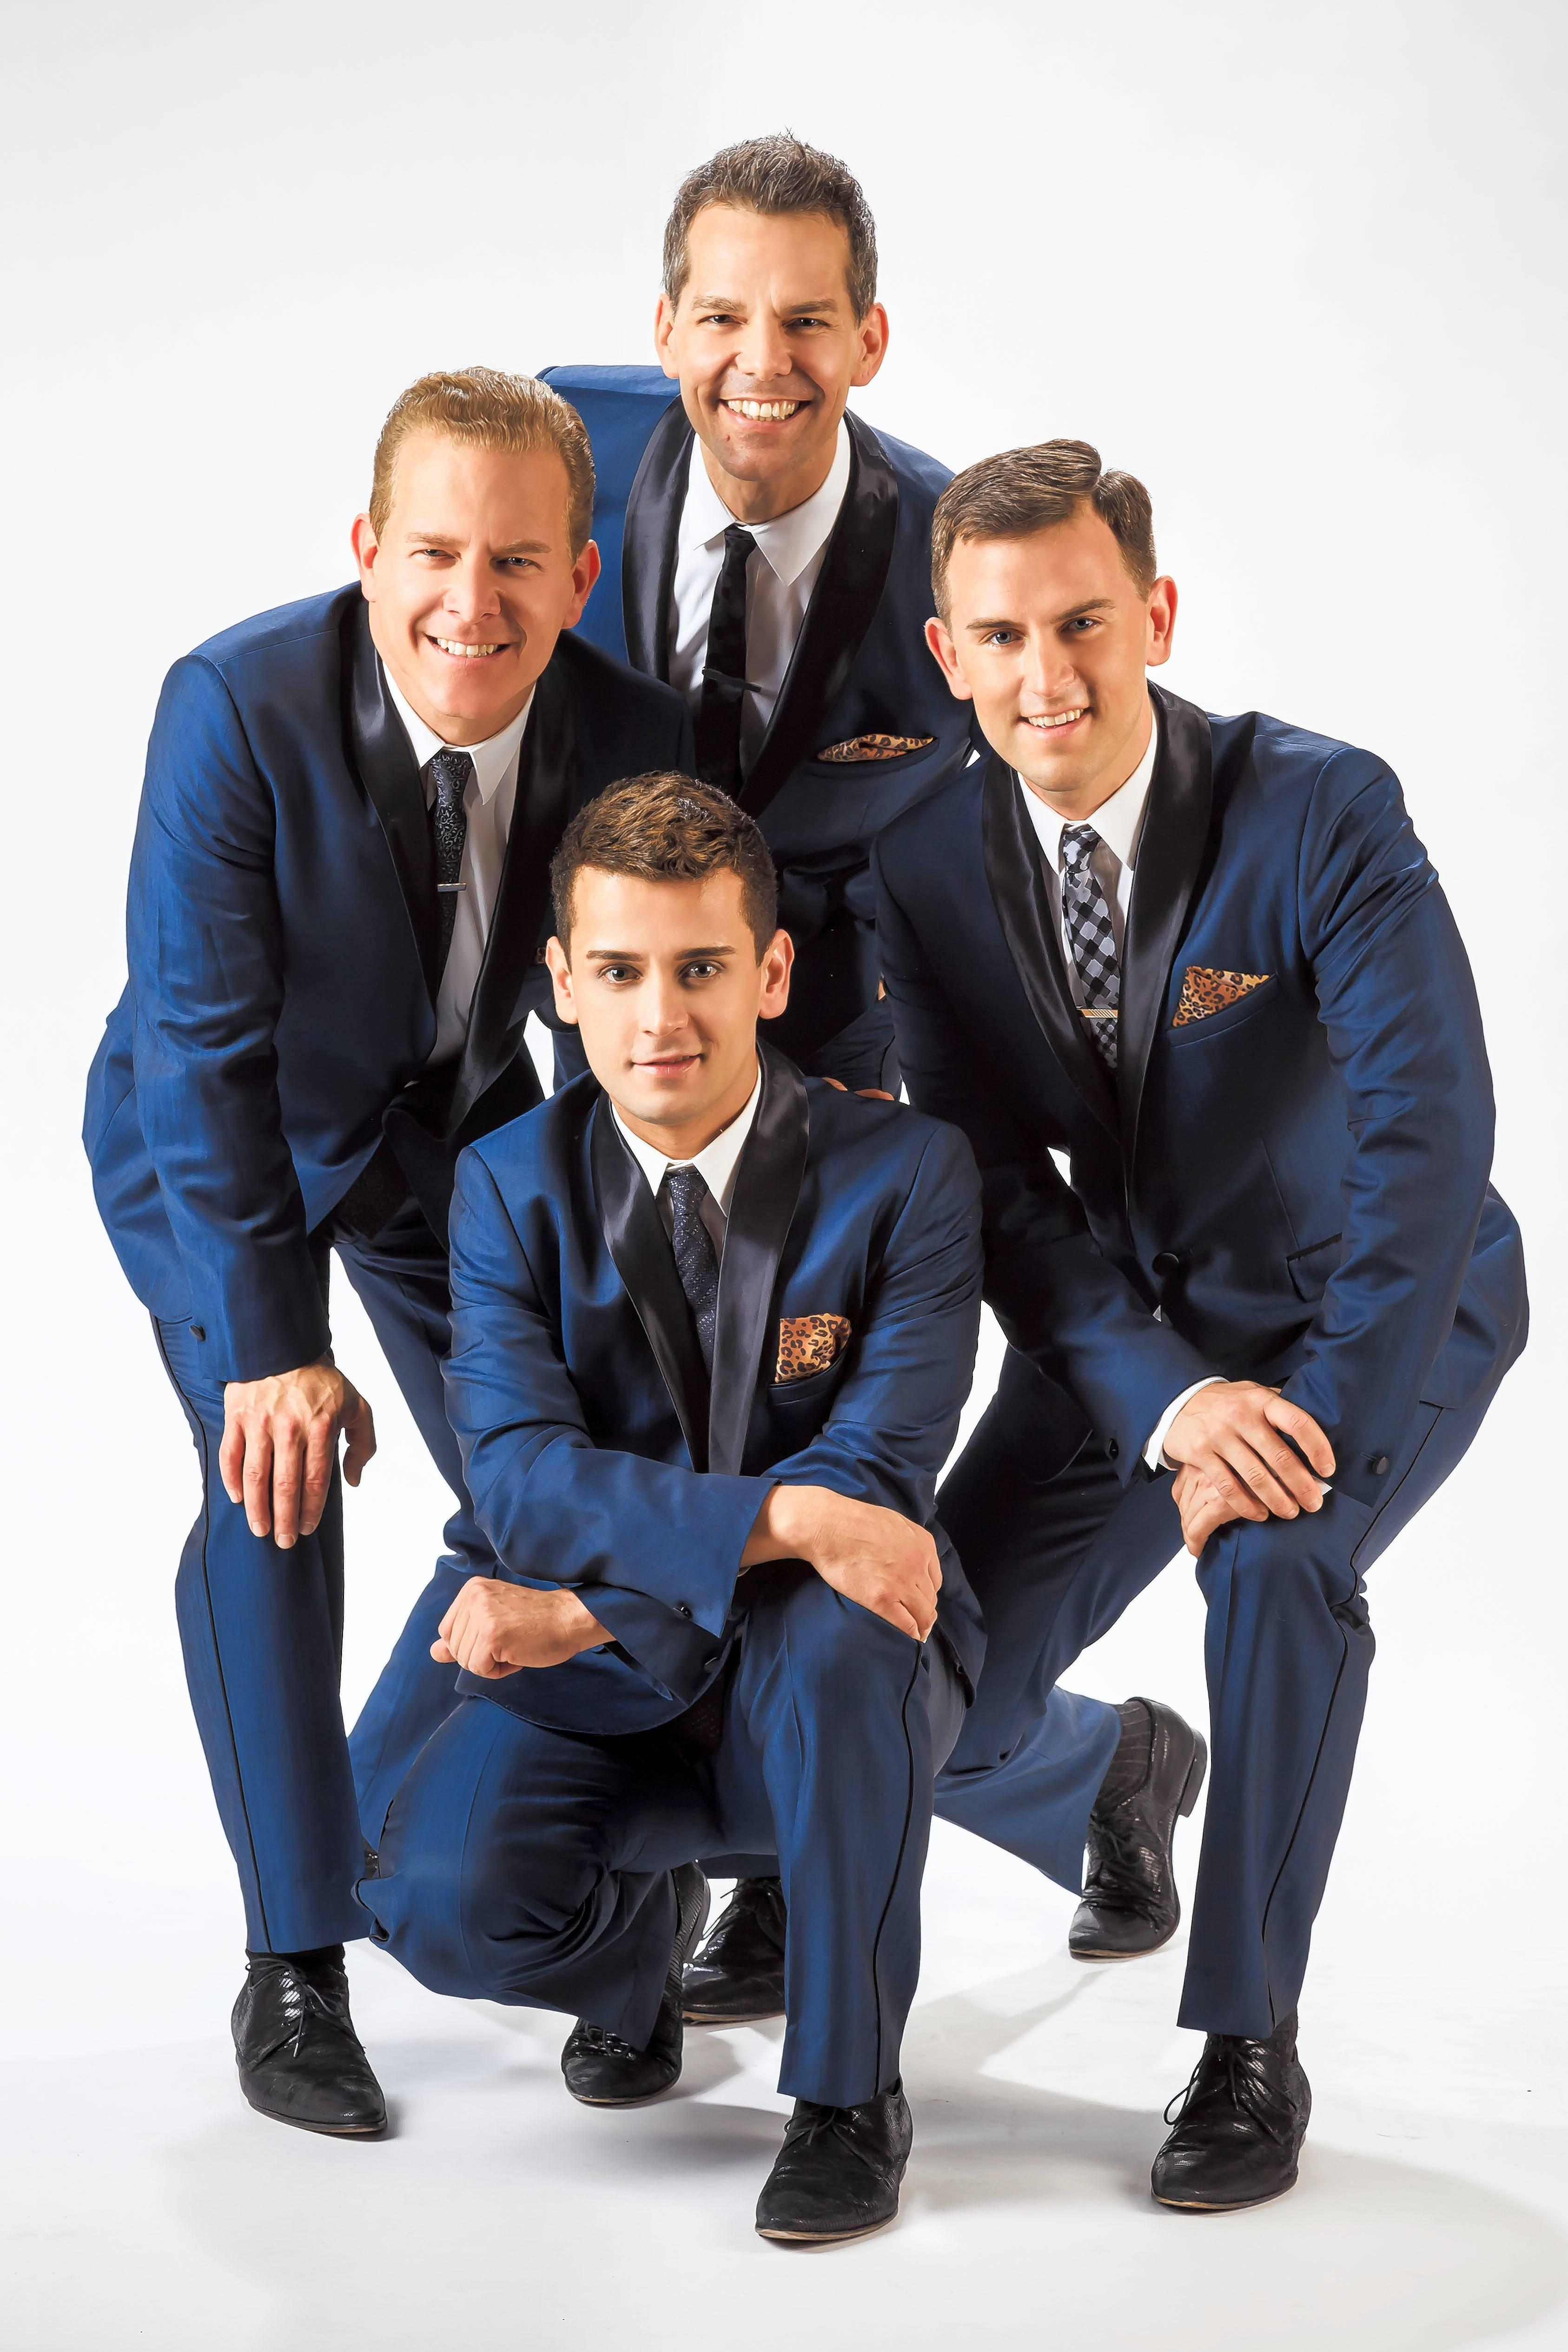 The Midtown Men return to the Paramount Theatre in Aurora on Saturday, March 23.